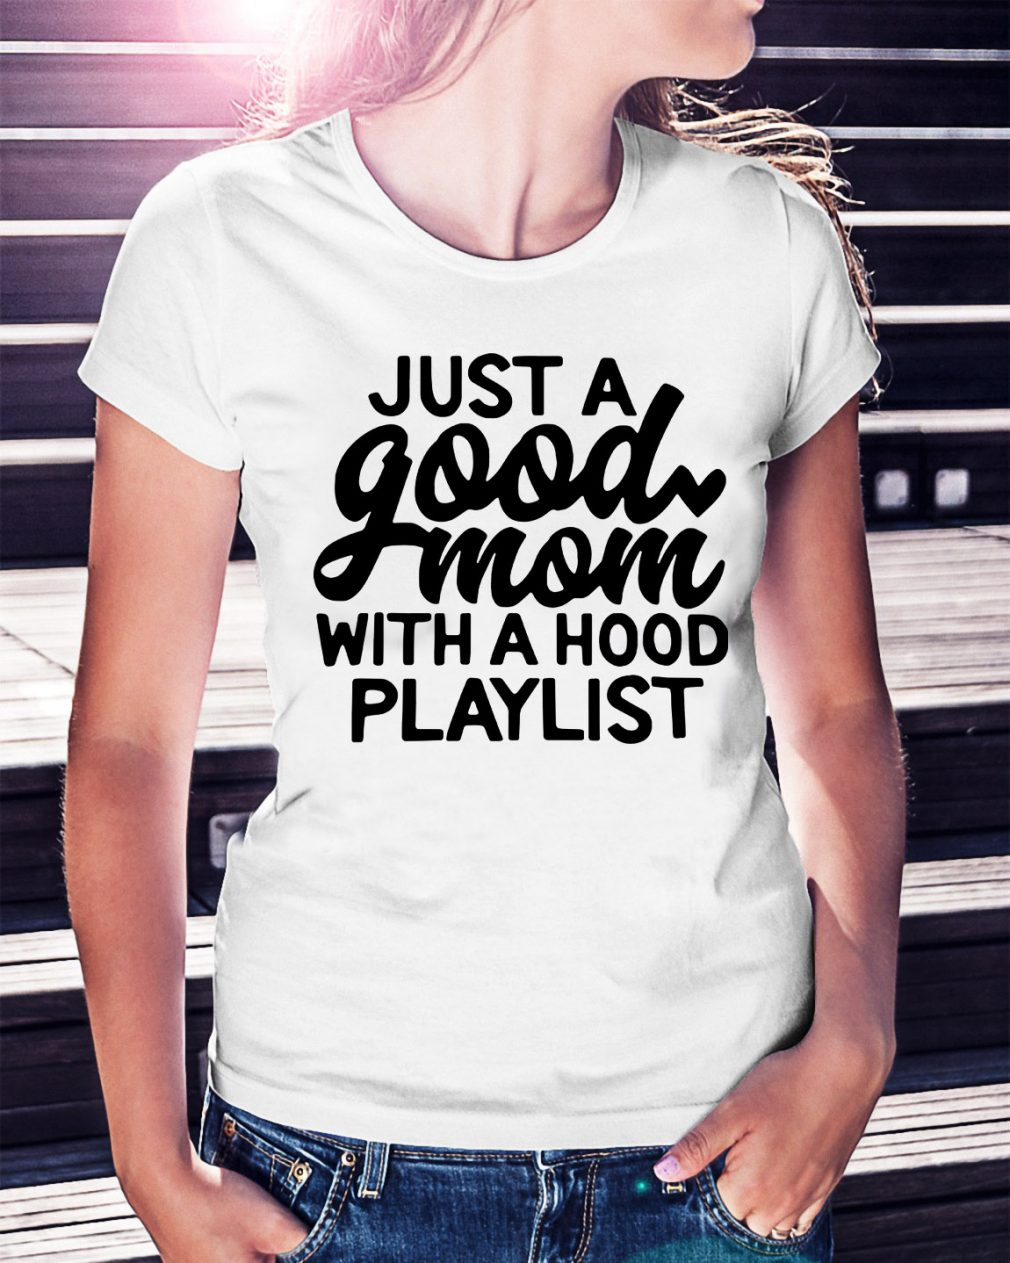 Just a good mom with a hood playlist Ladies Tee